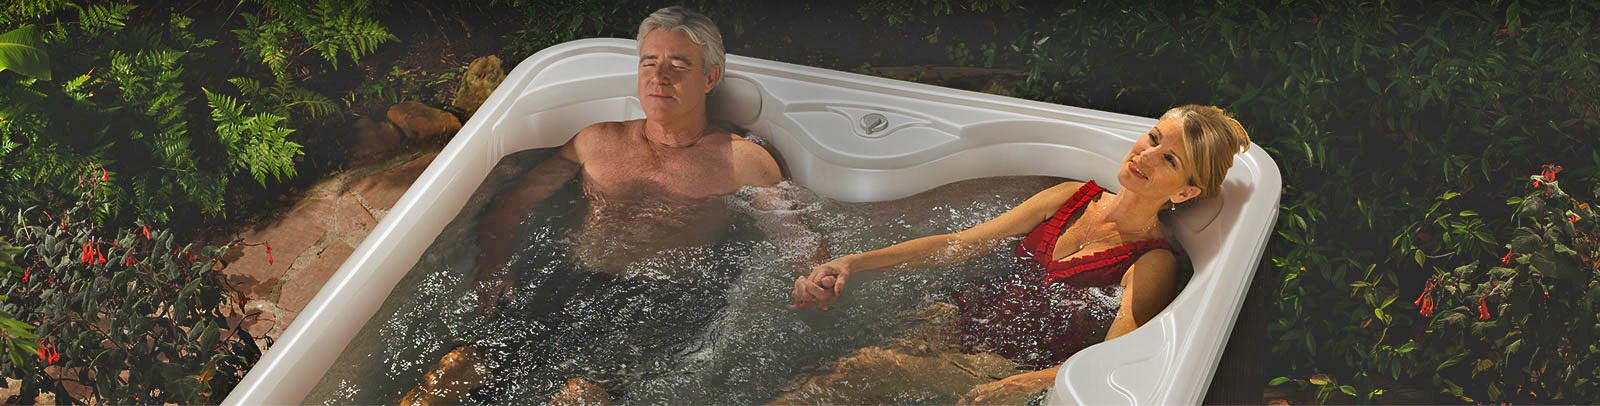 Relax in your hot pool tonight. We usually have a selection of spas ready to plug in today!